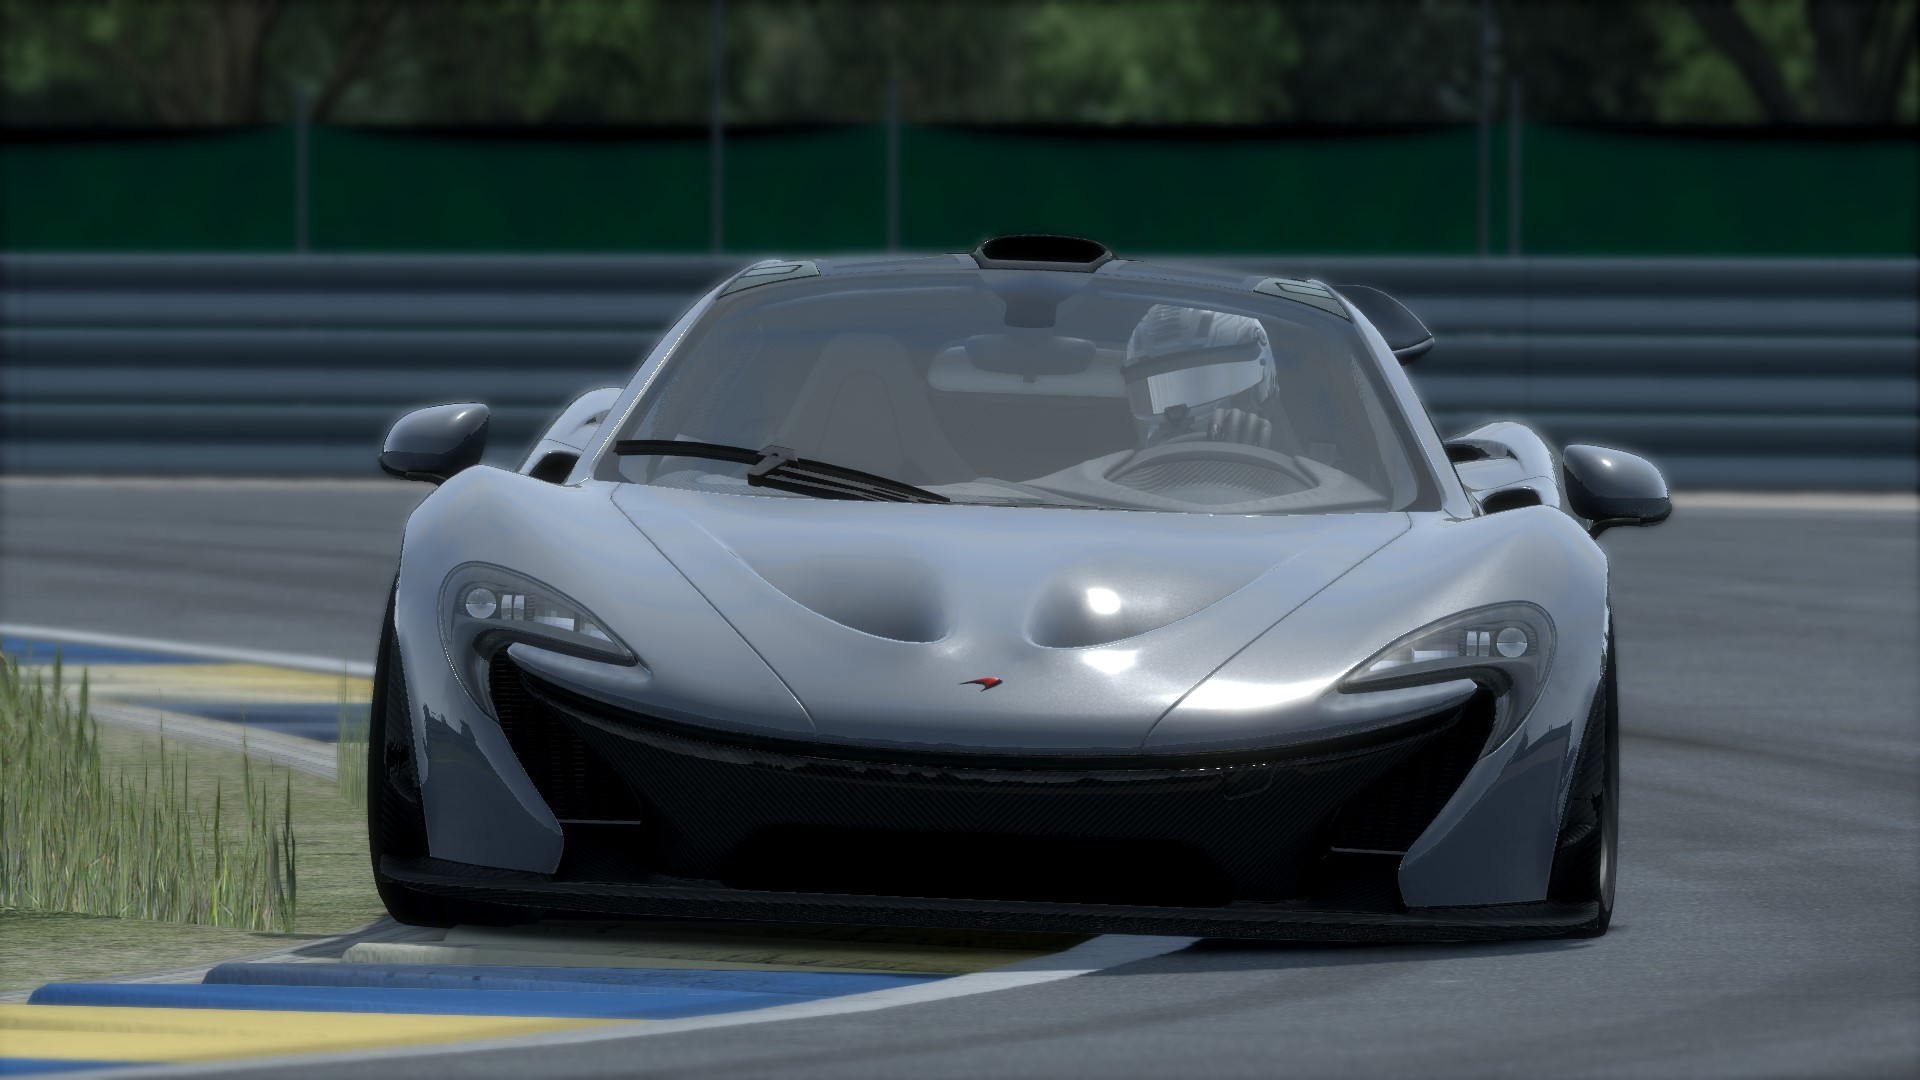 Screenshot_ks_mclaren_p1_modena_12-8-115-16-17-27.jpg